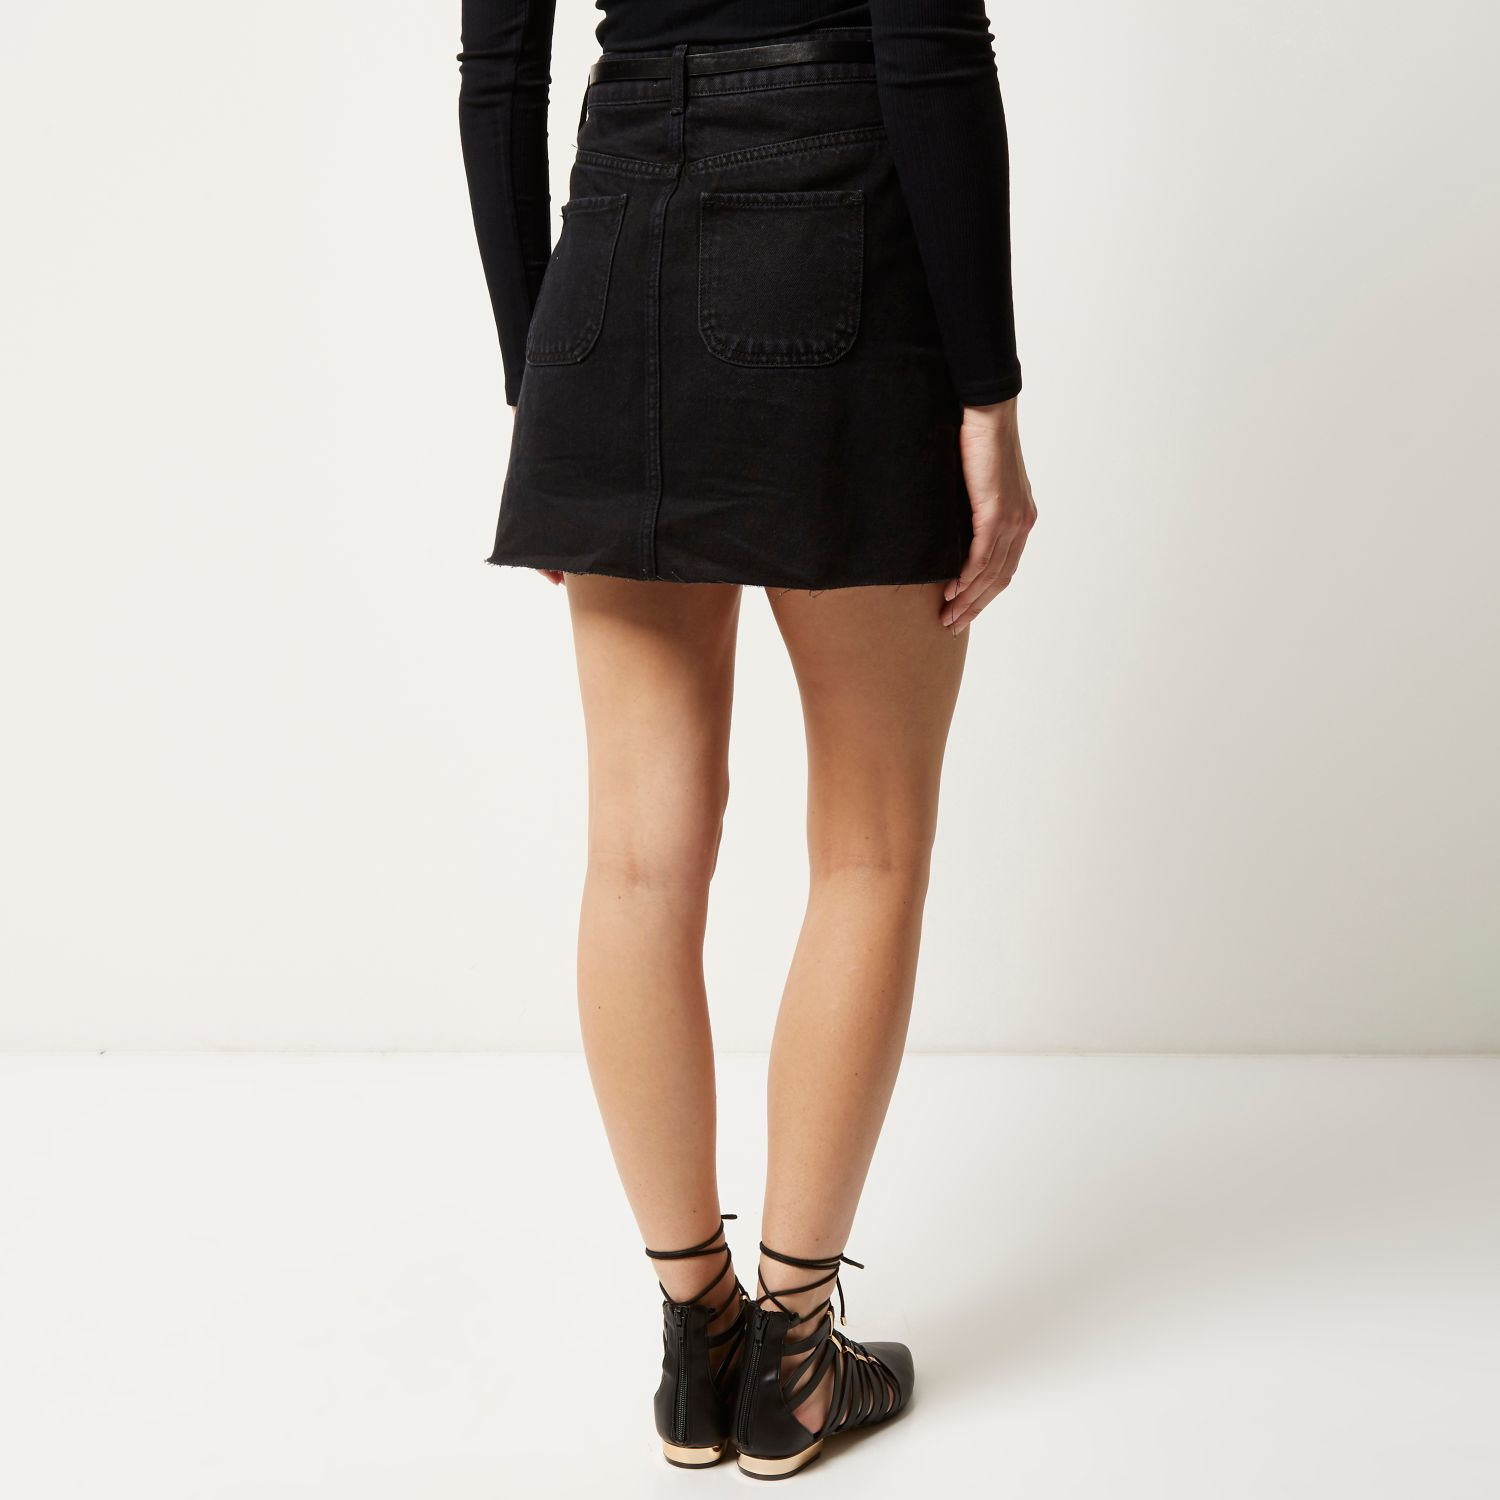 River island Black Denim Belted Button-up Skirt in Black | Lyst